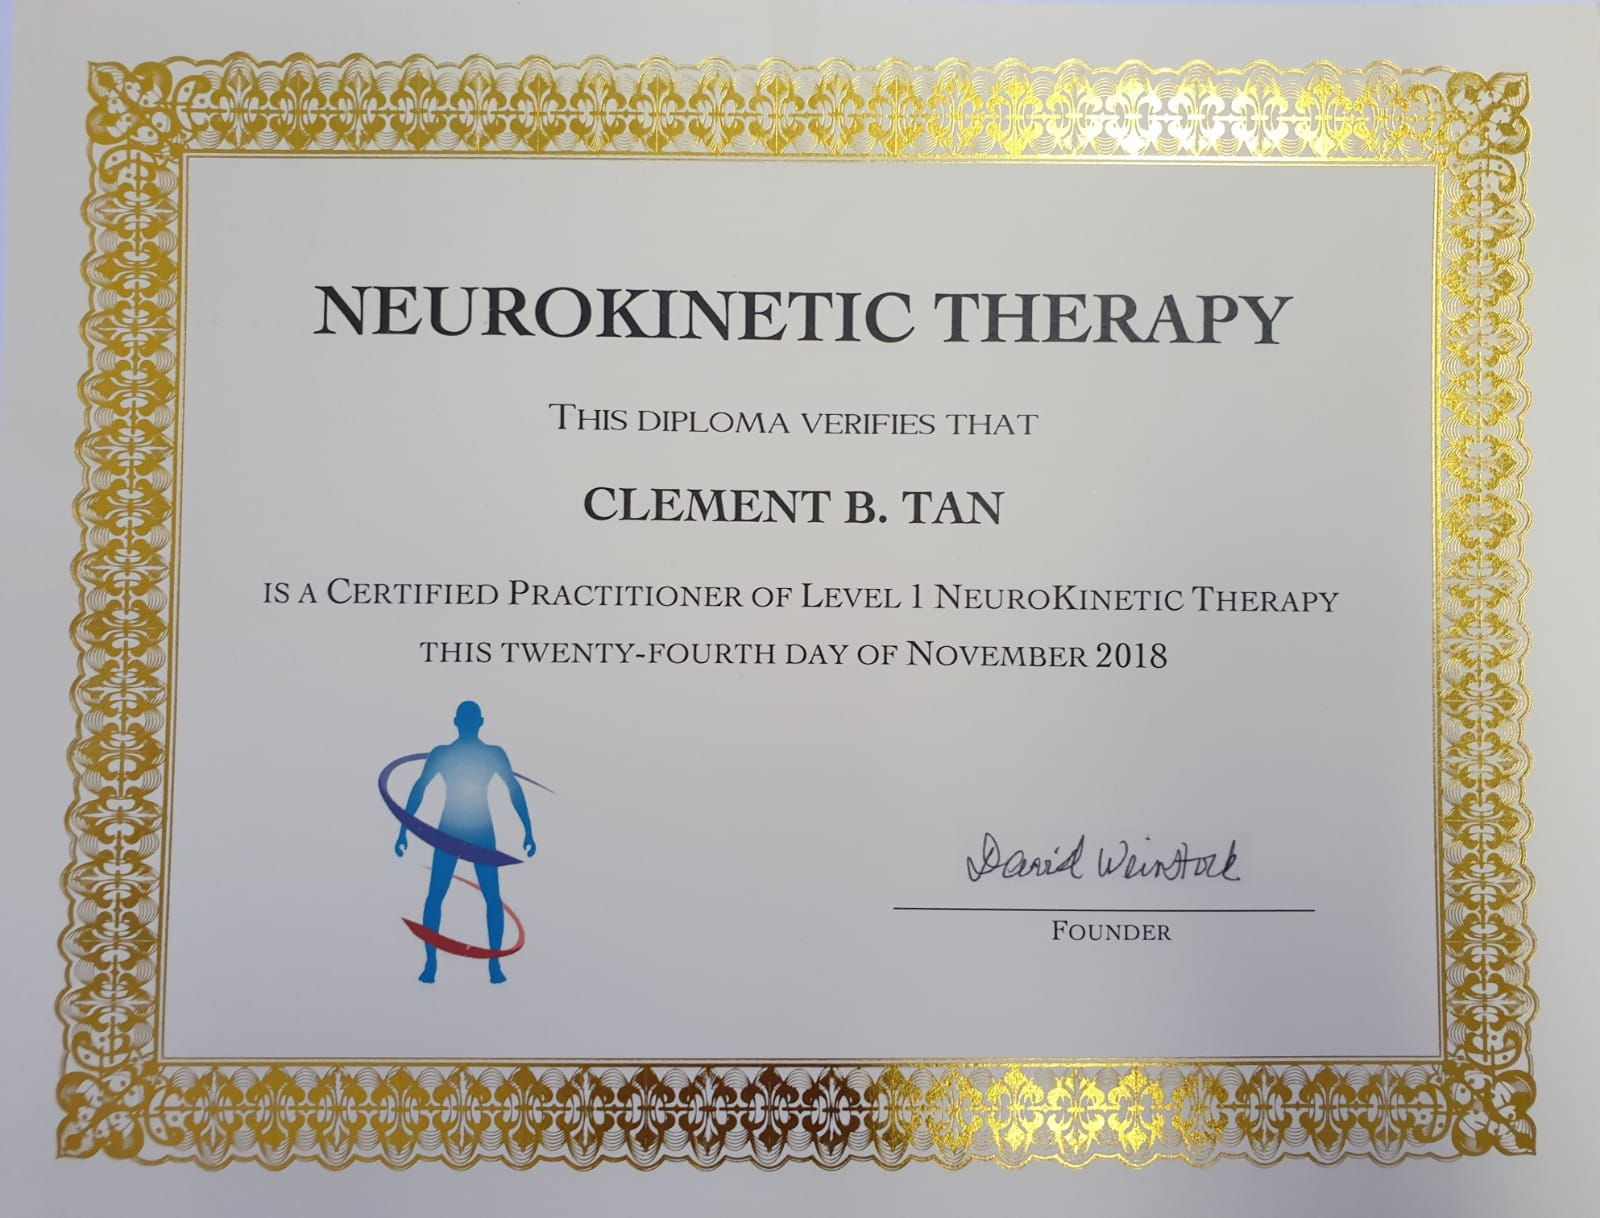 Neurokinetic Therapy Certified Practitioner